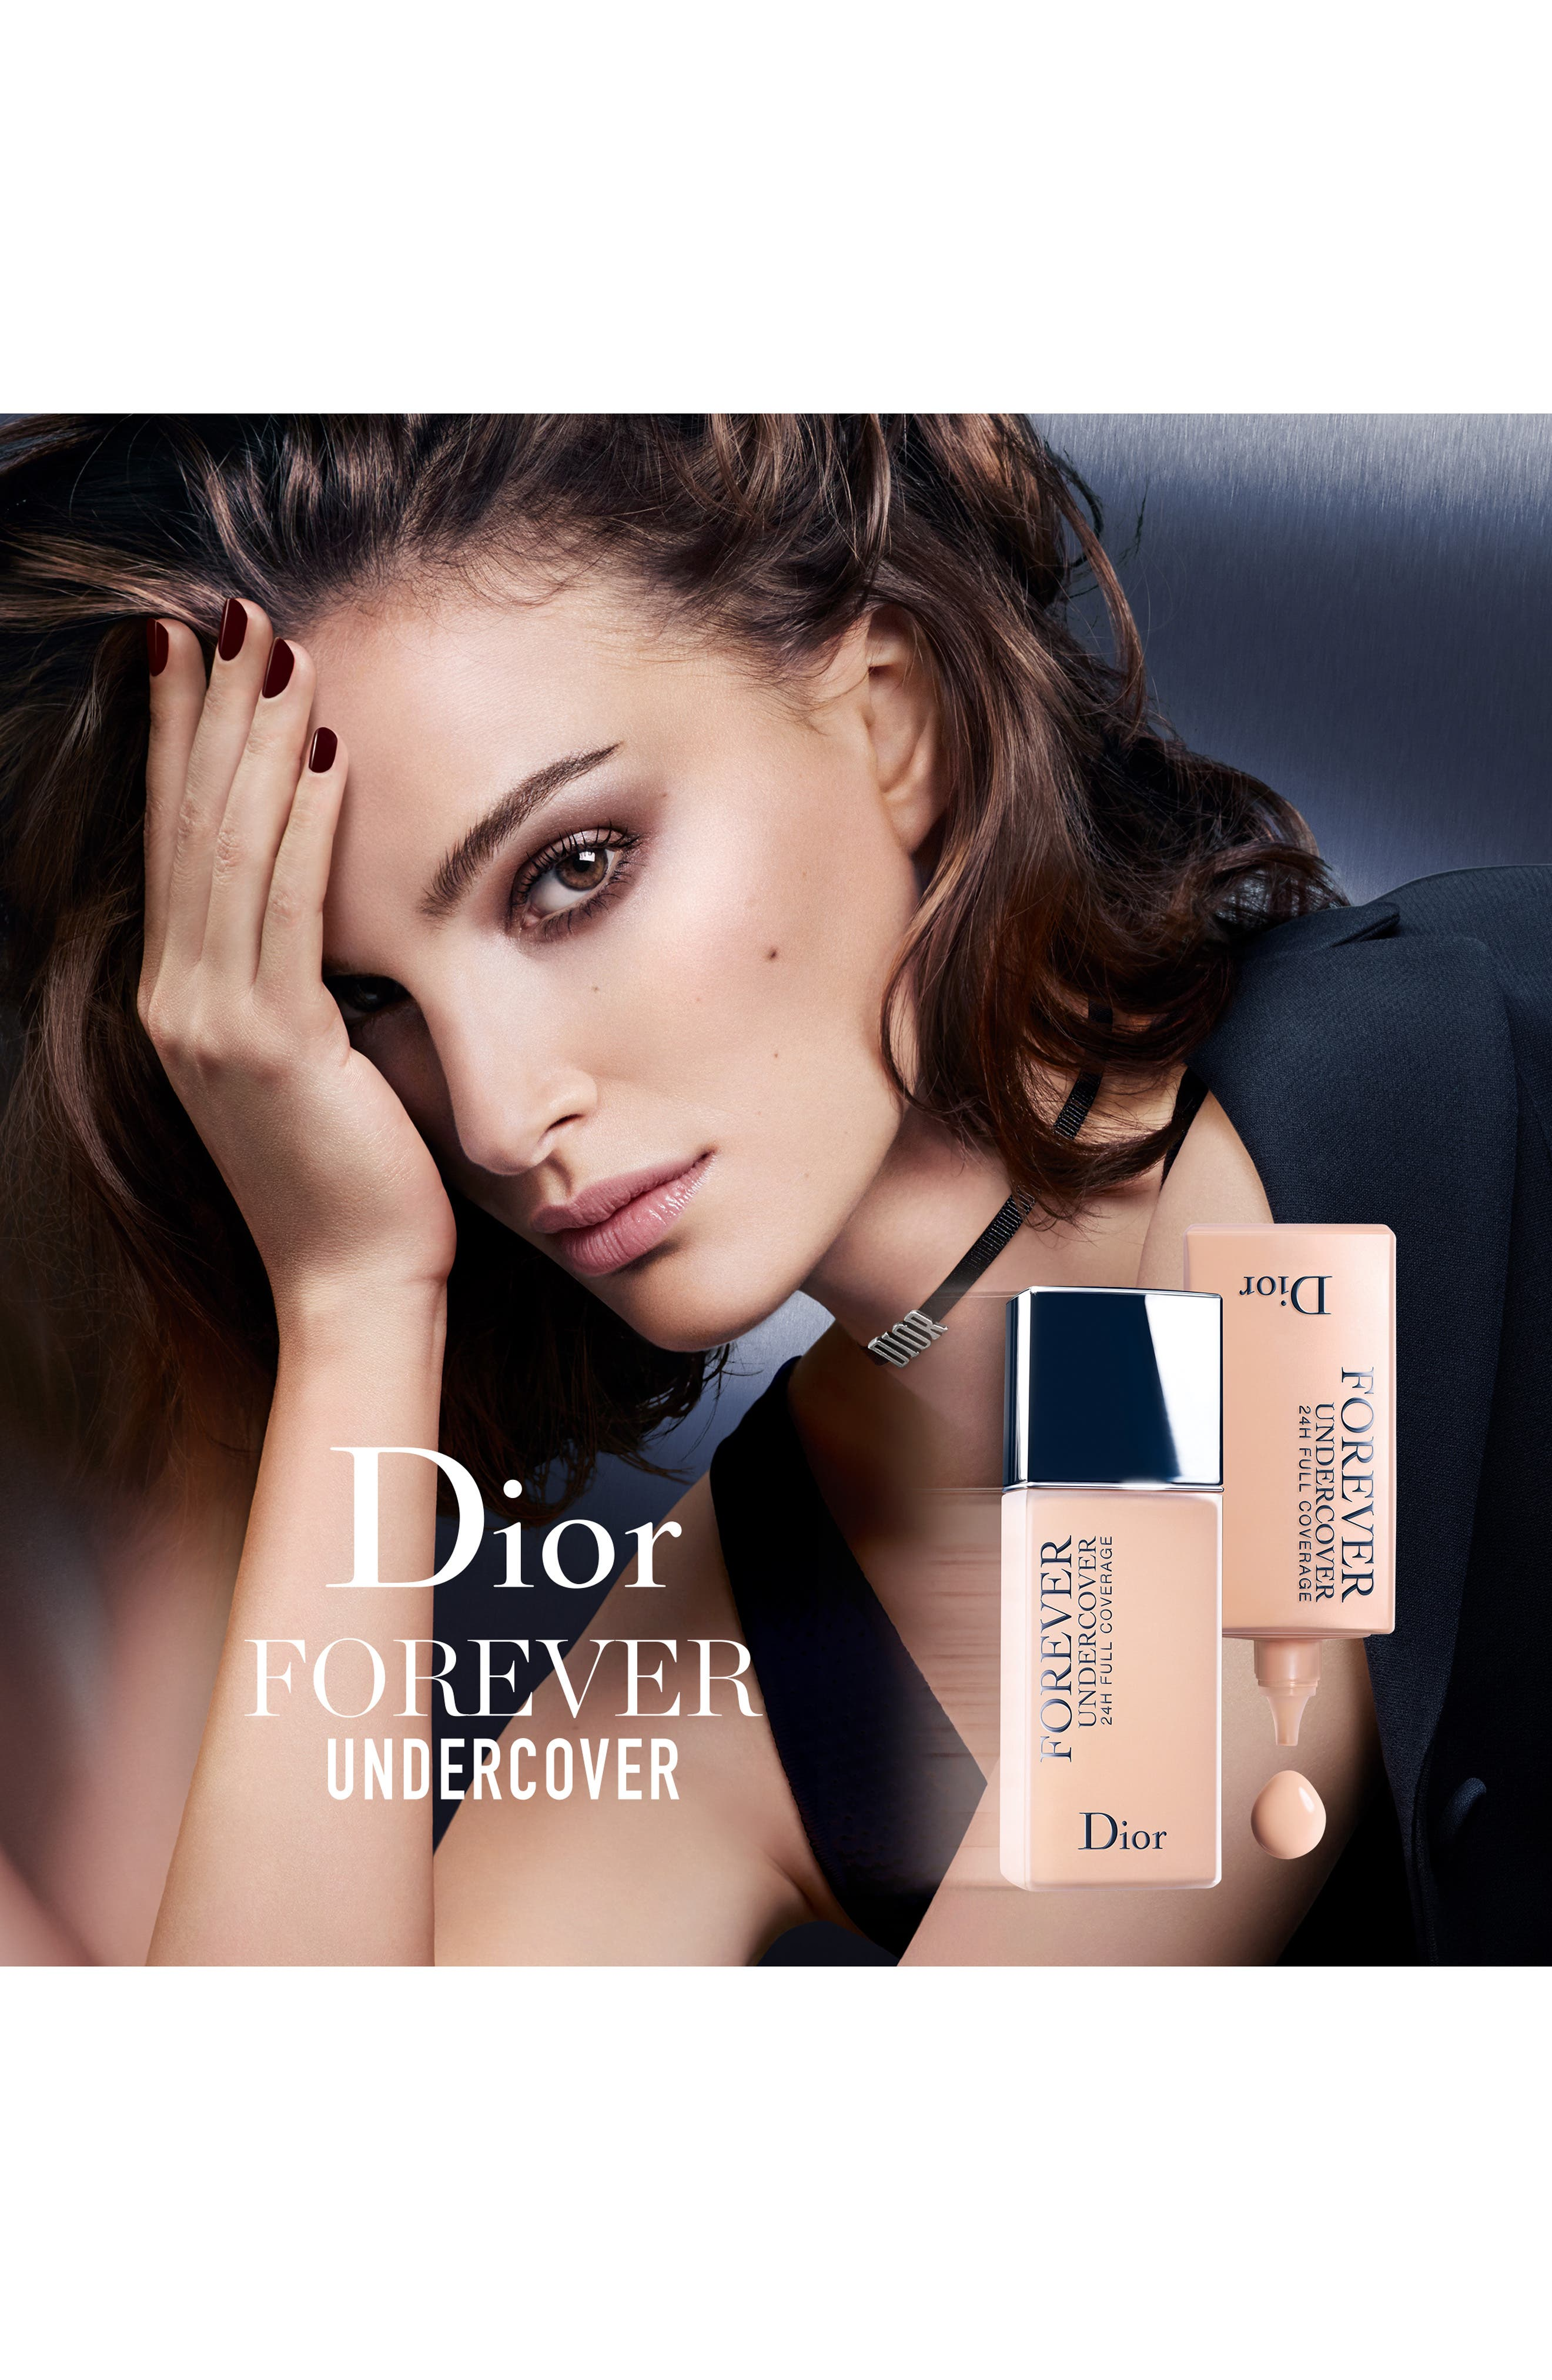 DIOR, Diorskin Forever Undercover 24-Hour Full Coverage Water-Based Foundation, Alternate thumbnail 8, color, 051 PRALINE